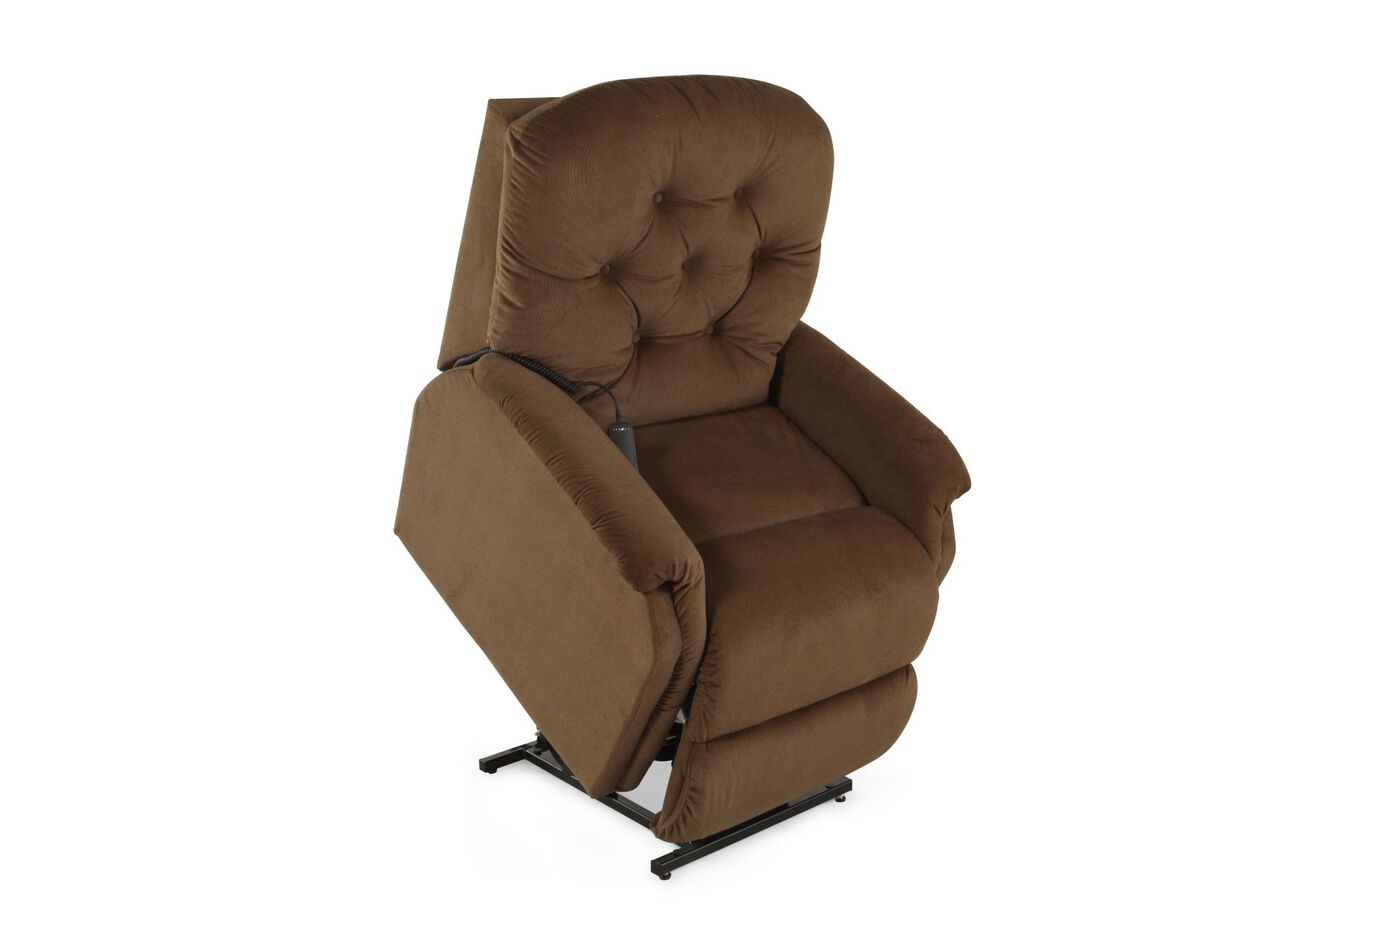 Textured Contemporary 35 Lift Recliner In Camel